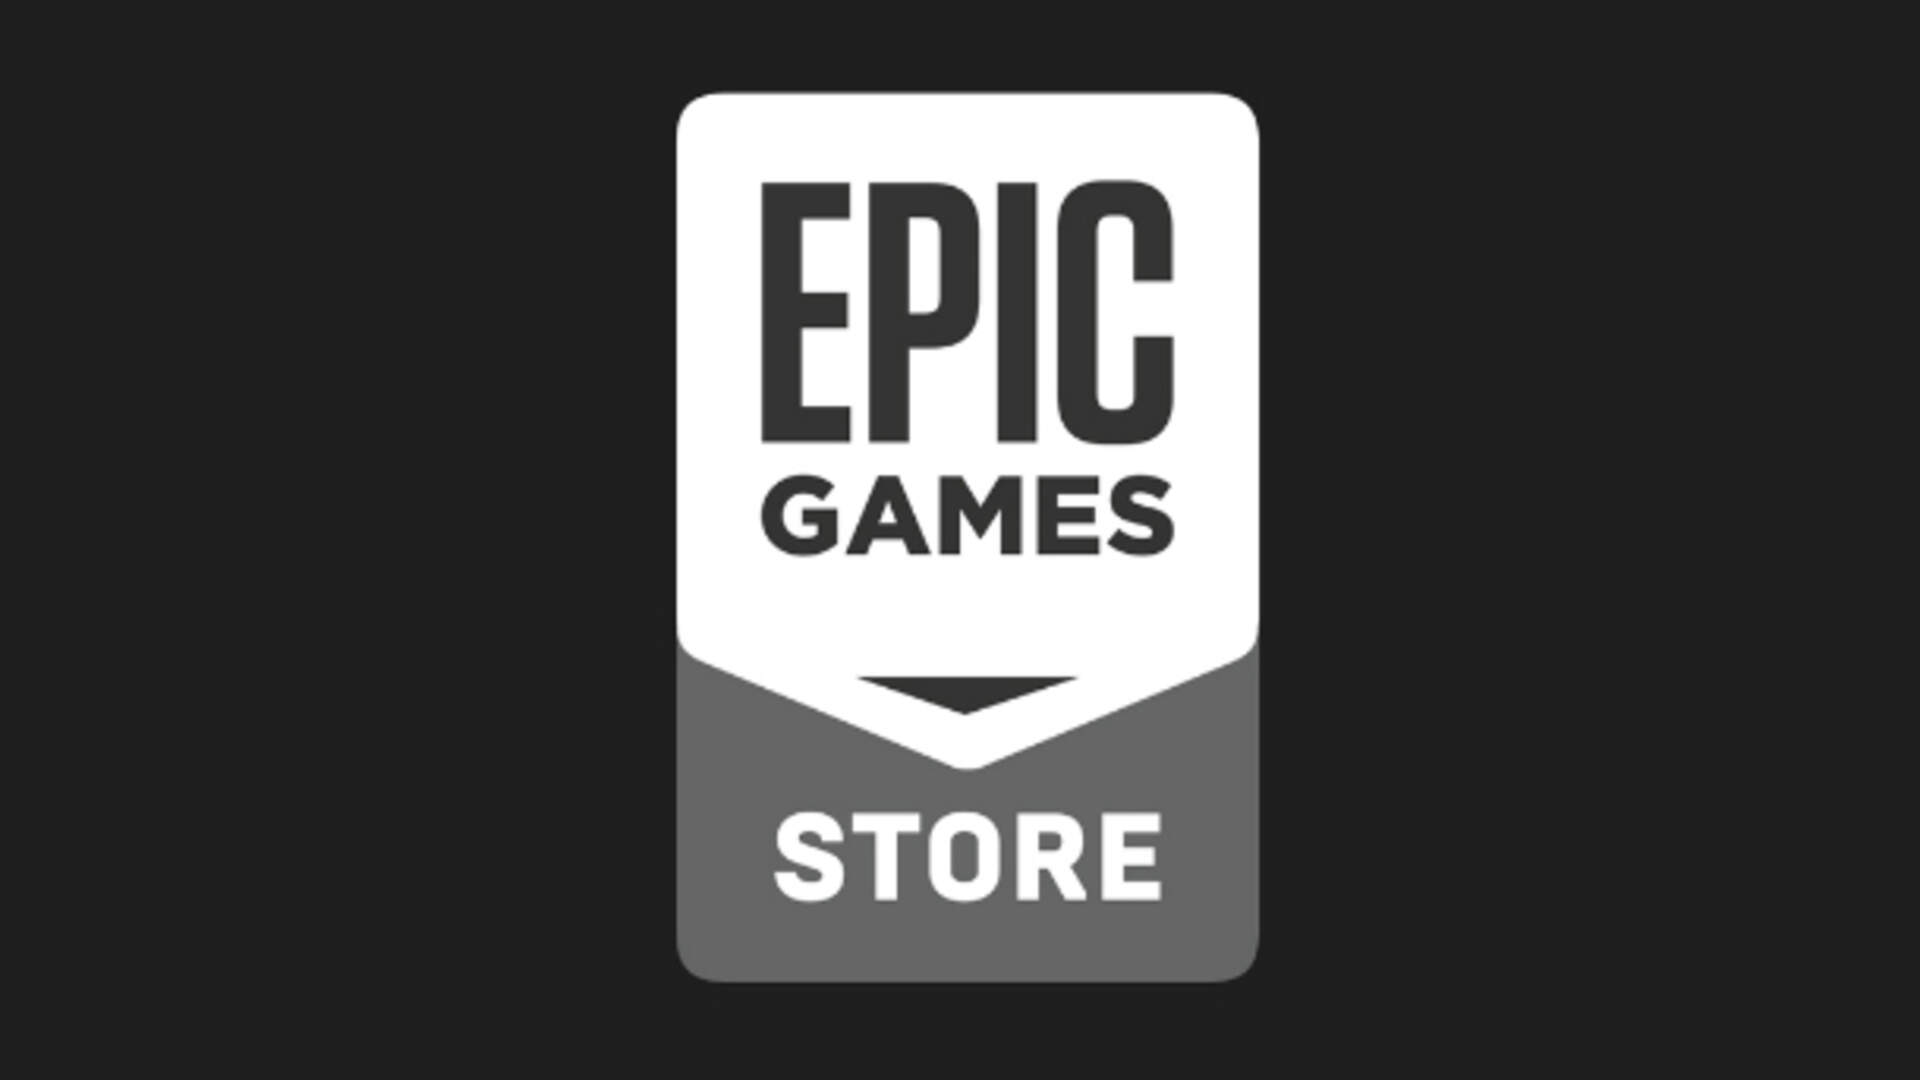 Epic Launches New Game Store Aimed Directly at Taking on Steam